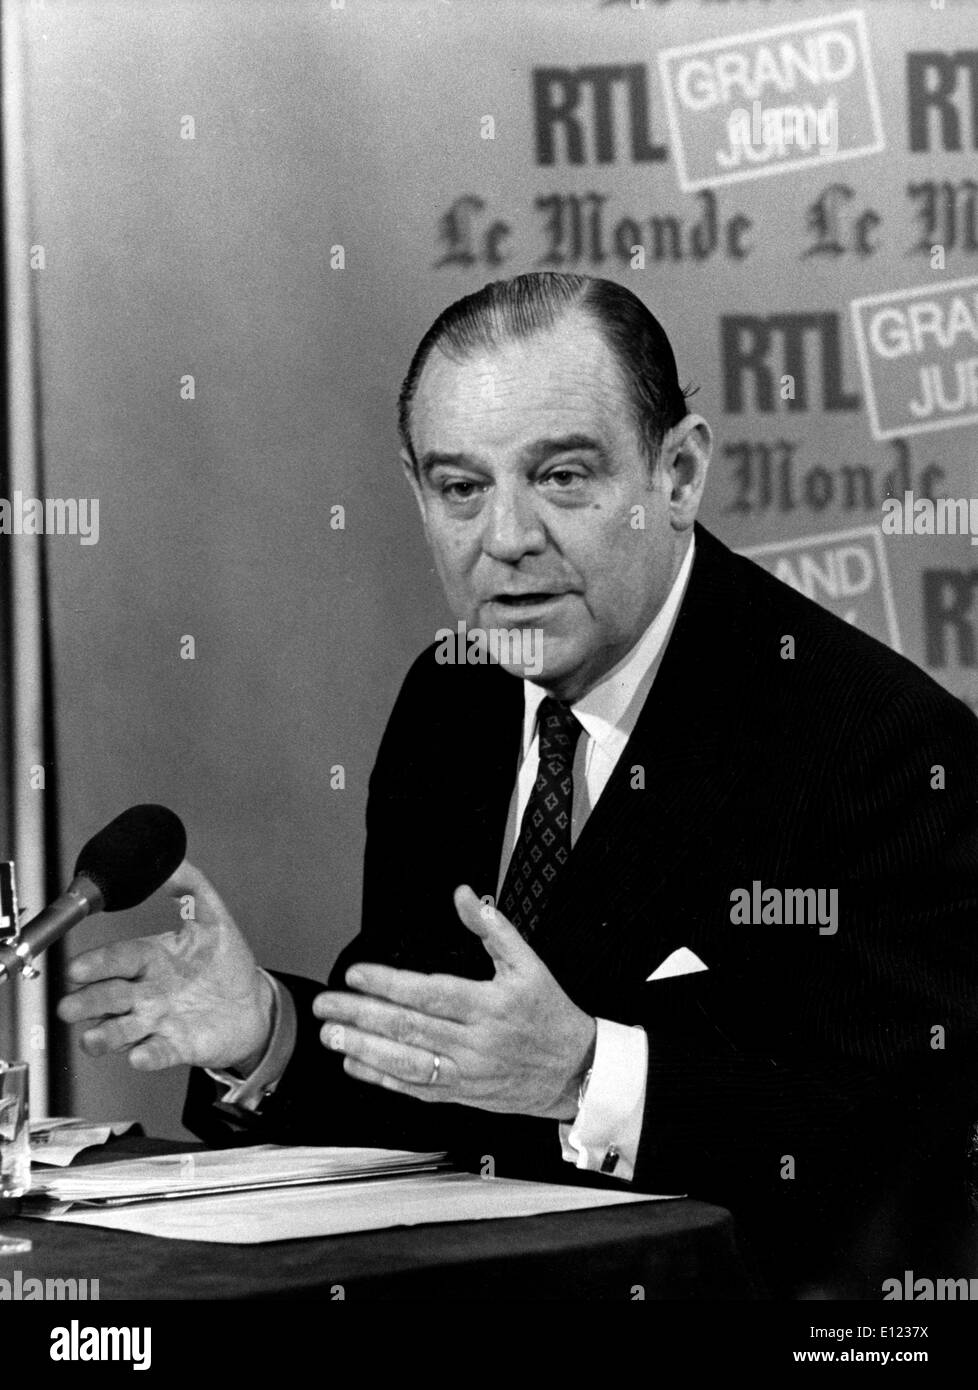 RAYMOND BARRE French Prime Minister - Stock Image